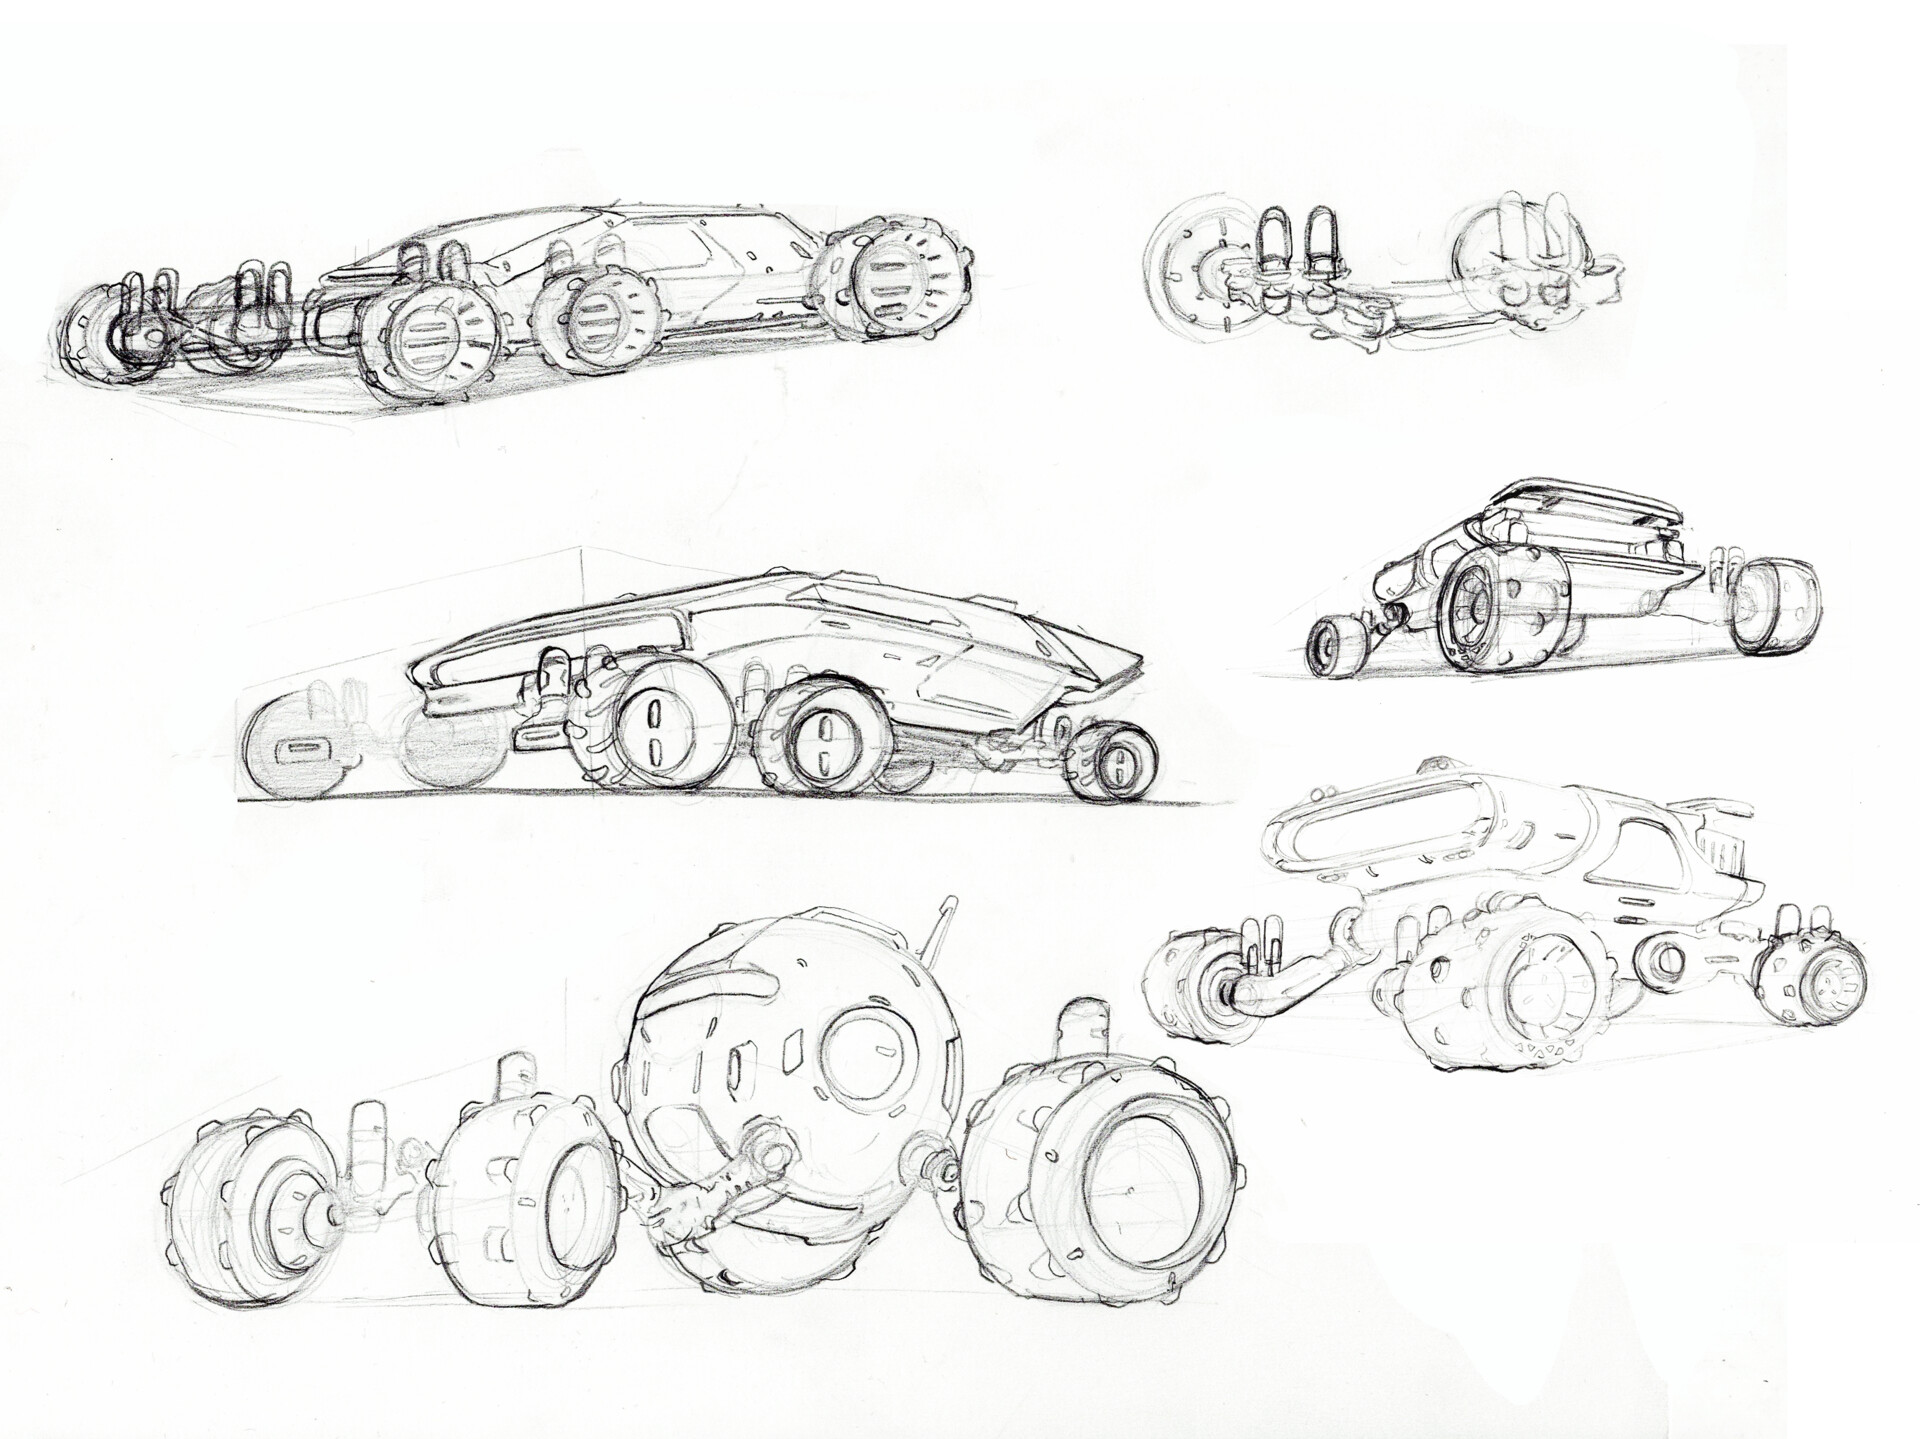 Space Rover Design Continued